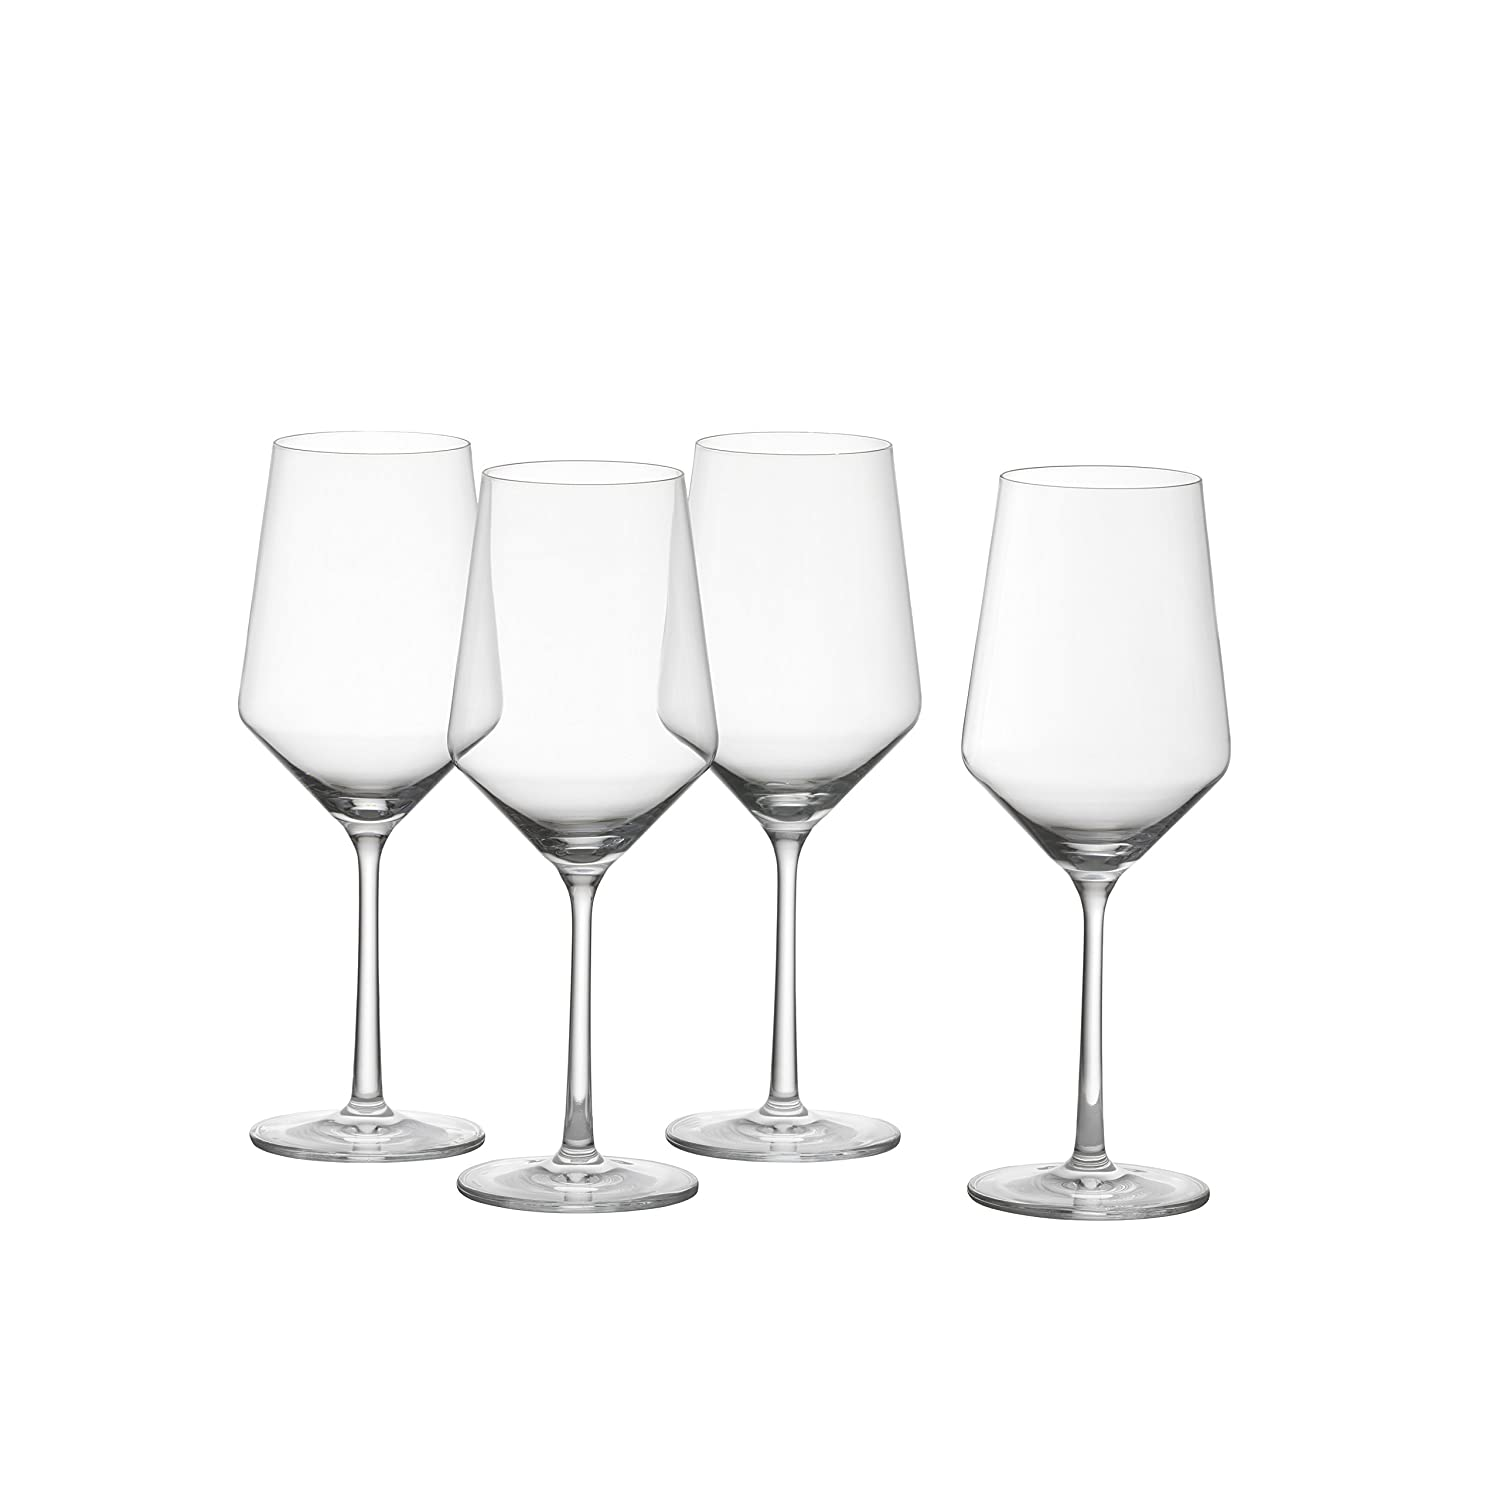 Schott Zwiesel Tritan Crystal Glass Pure Barware Collection Dancing Party Tumblers, 13.4-Ounce, Set of 2 Fortessa 0026.116563